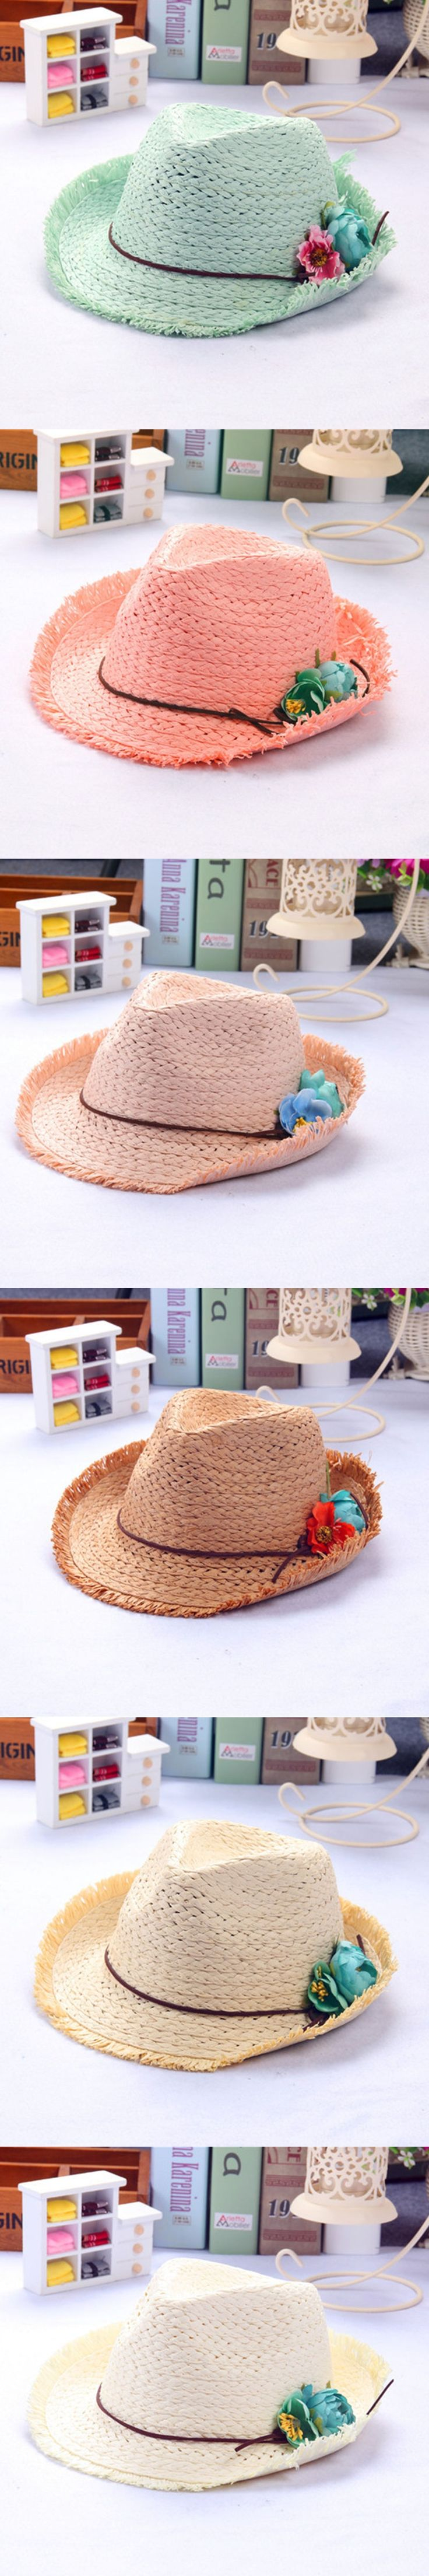 children babys boys and girls new sun hat beach double color child hat summer Hand weave broken edges jazz hat lm15